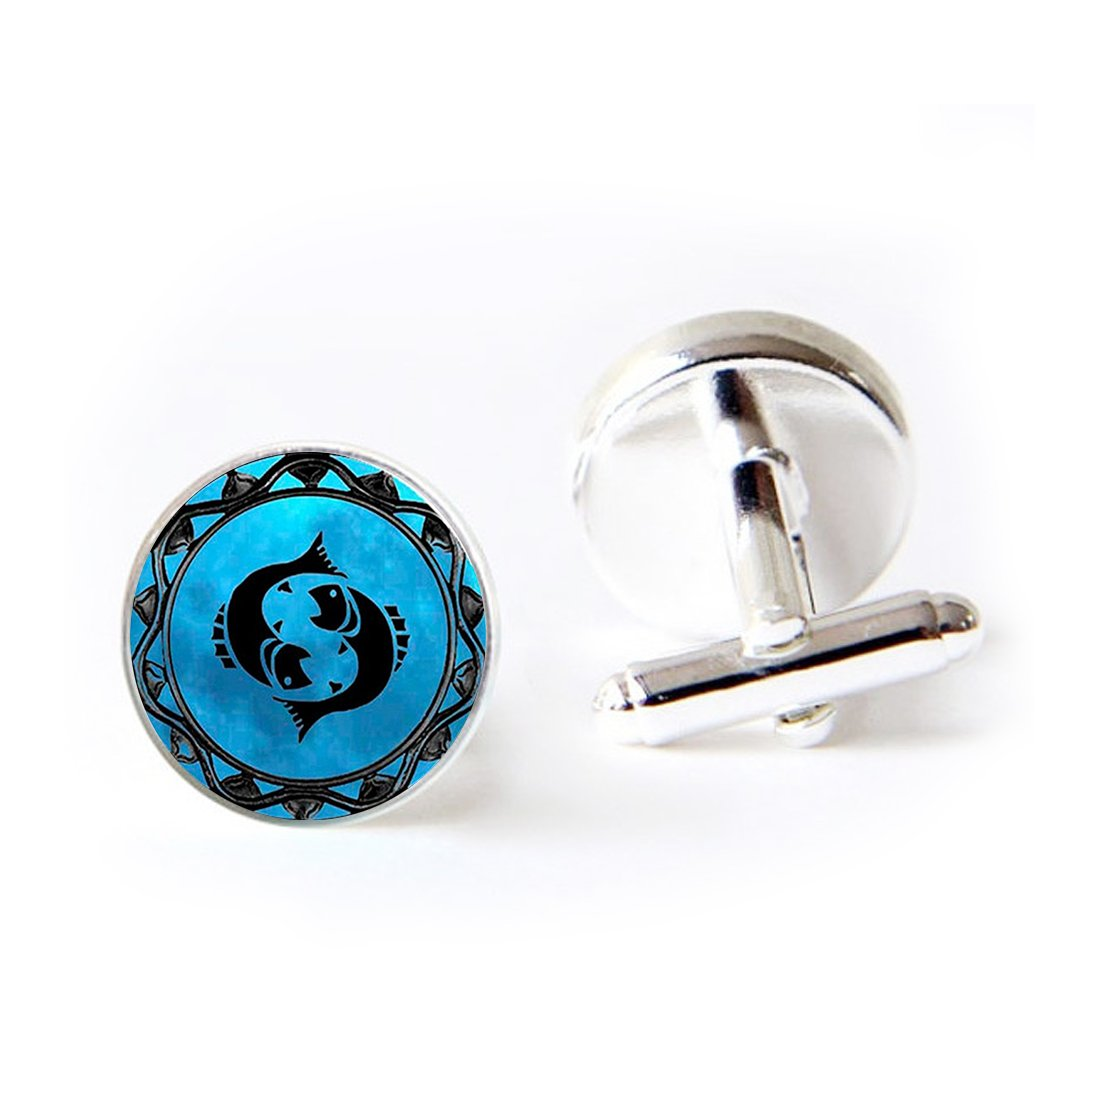 JEANCZ Jewelry Stainless Cufflinks Pluto Charm Dwarf Planet Pluto Space ProbeClassic Tuxedo Shirt Cufflinks with Elegant Storage Display Box LCZ0124-BSSLY-SL-LSZBS-0353